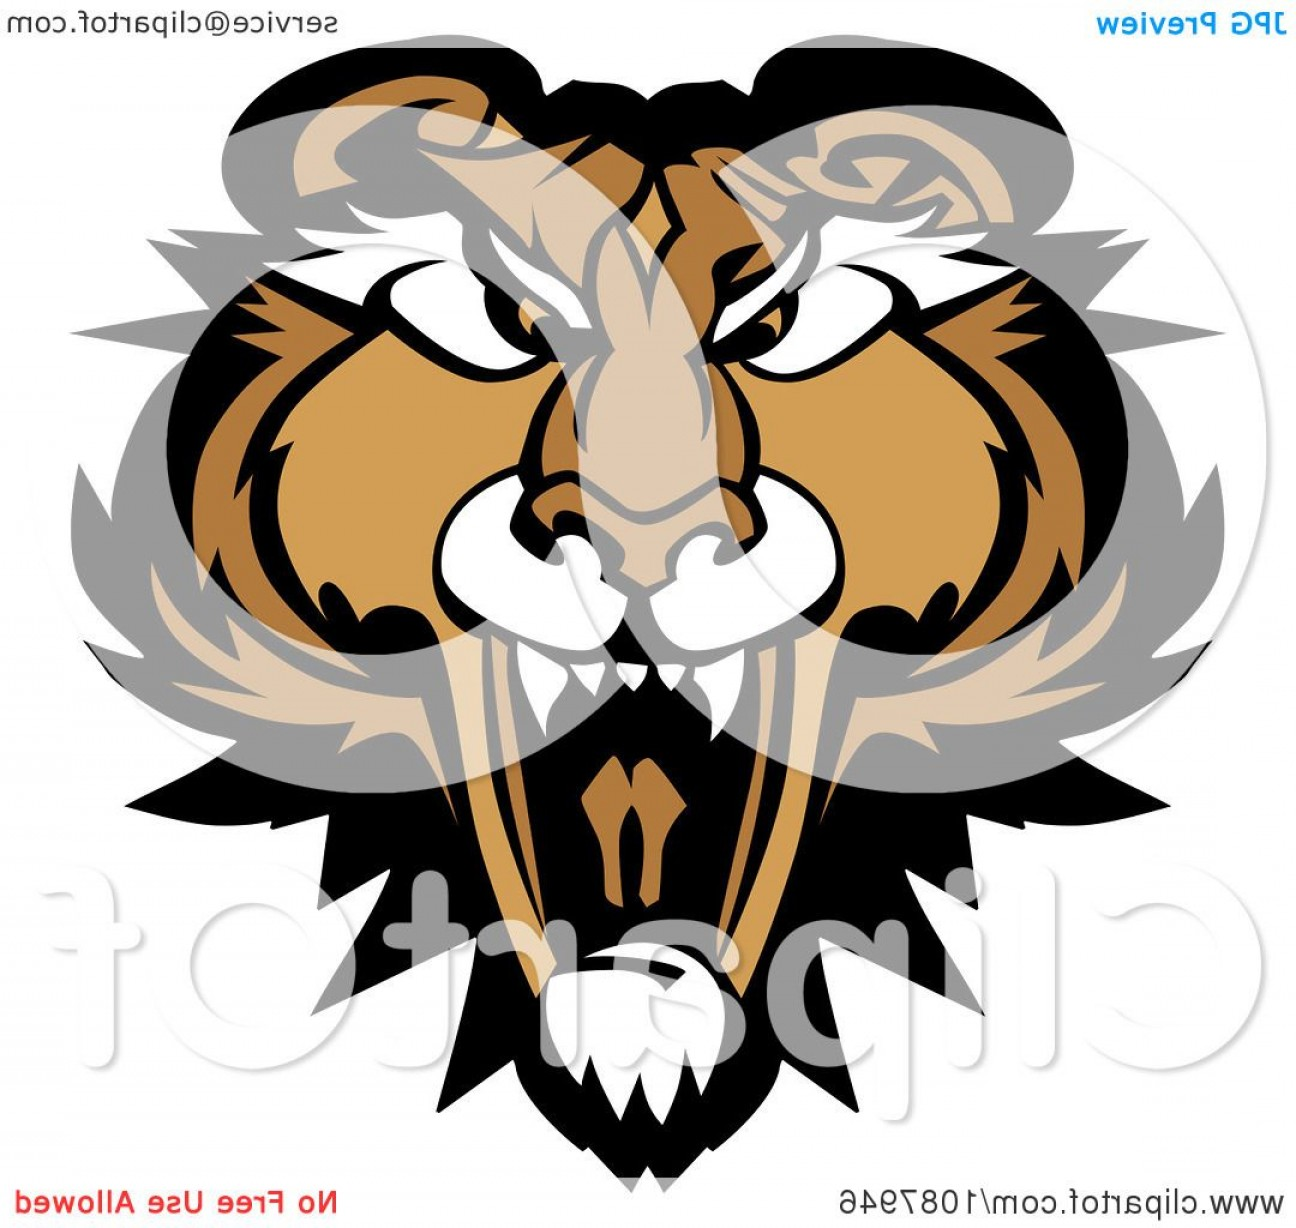 1296x1228 Roaring Puma Mountain Lion Head Mascot Lazttweet